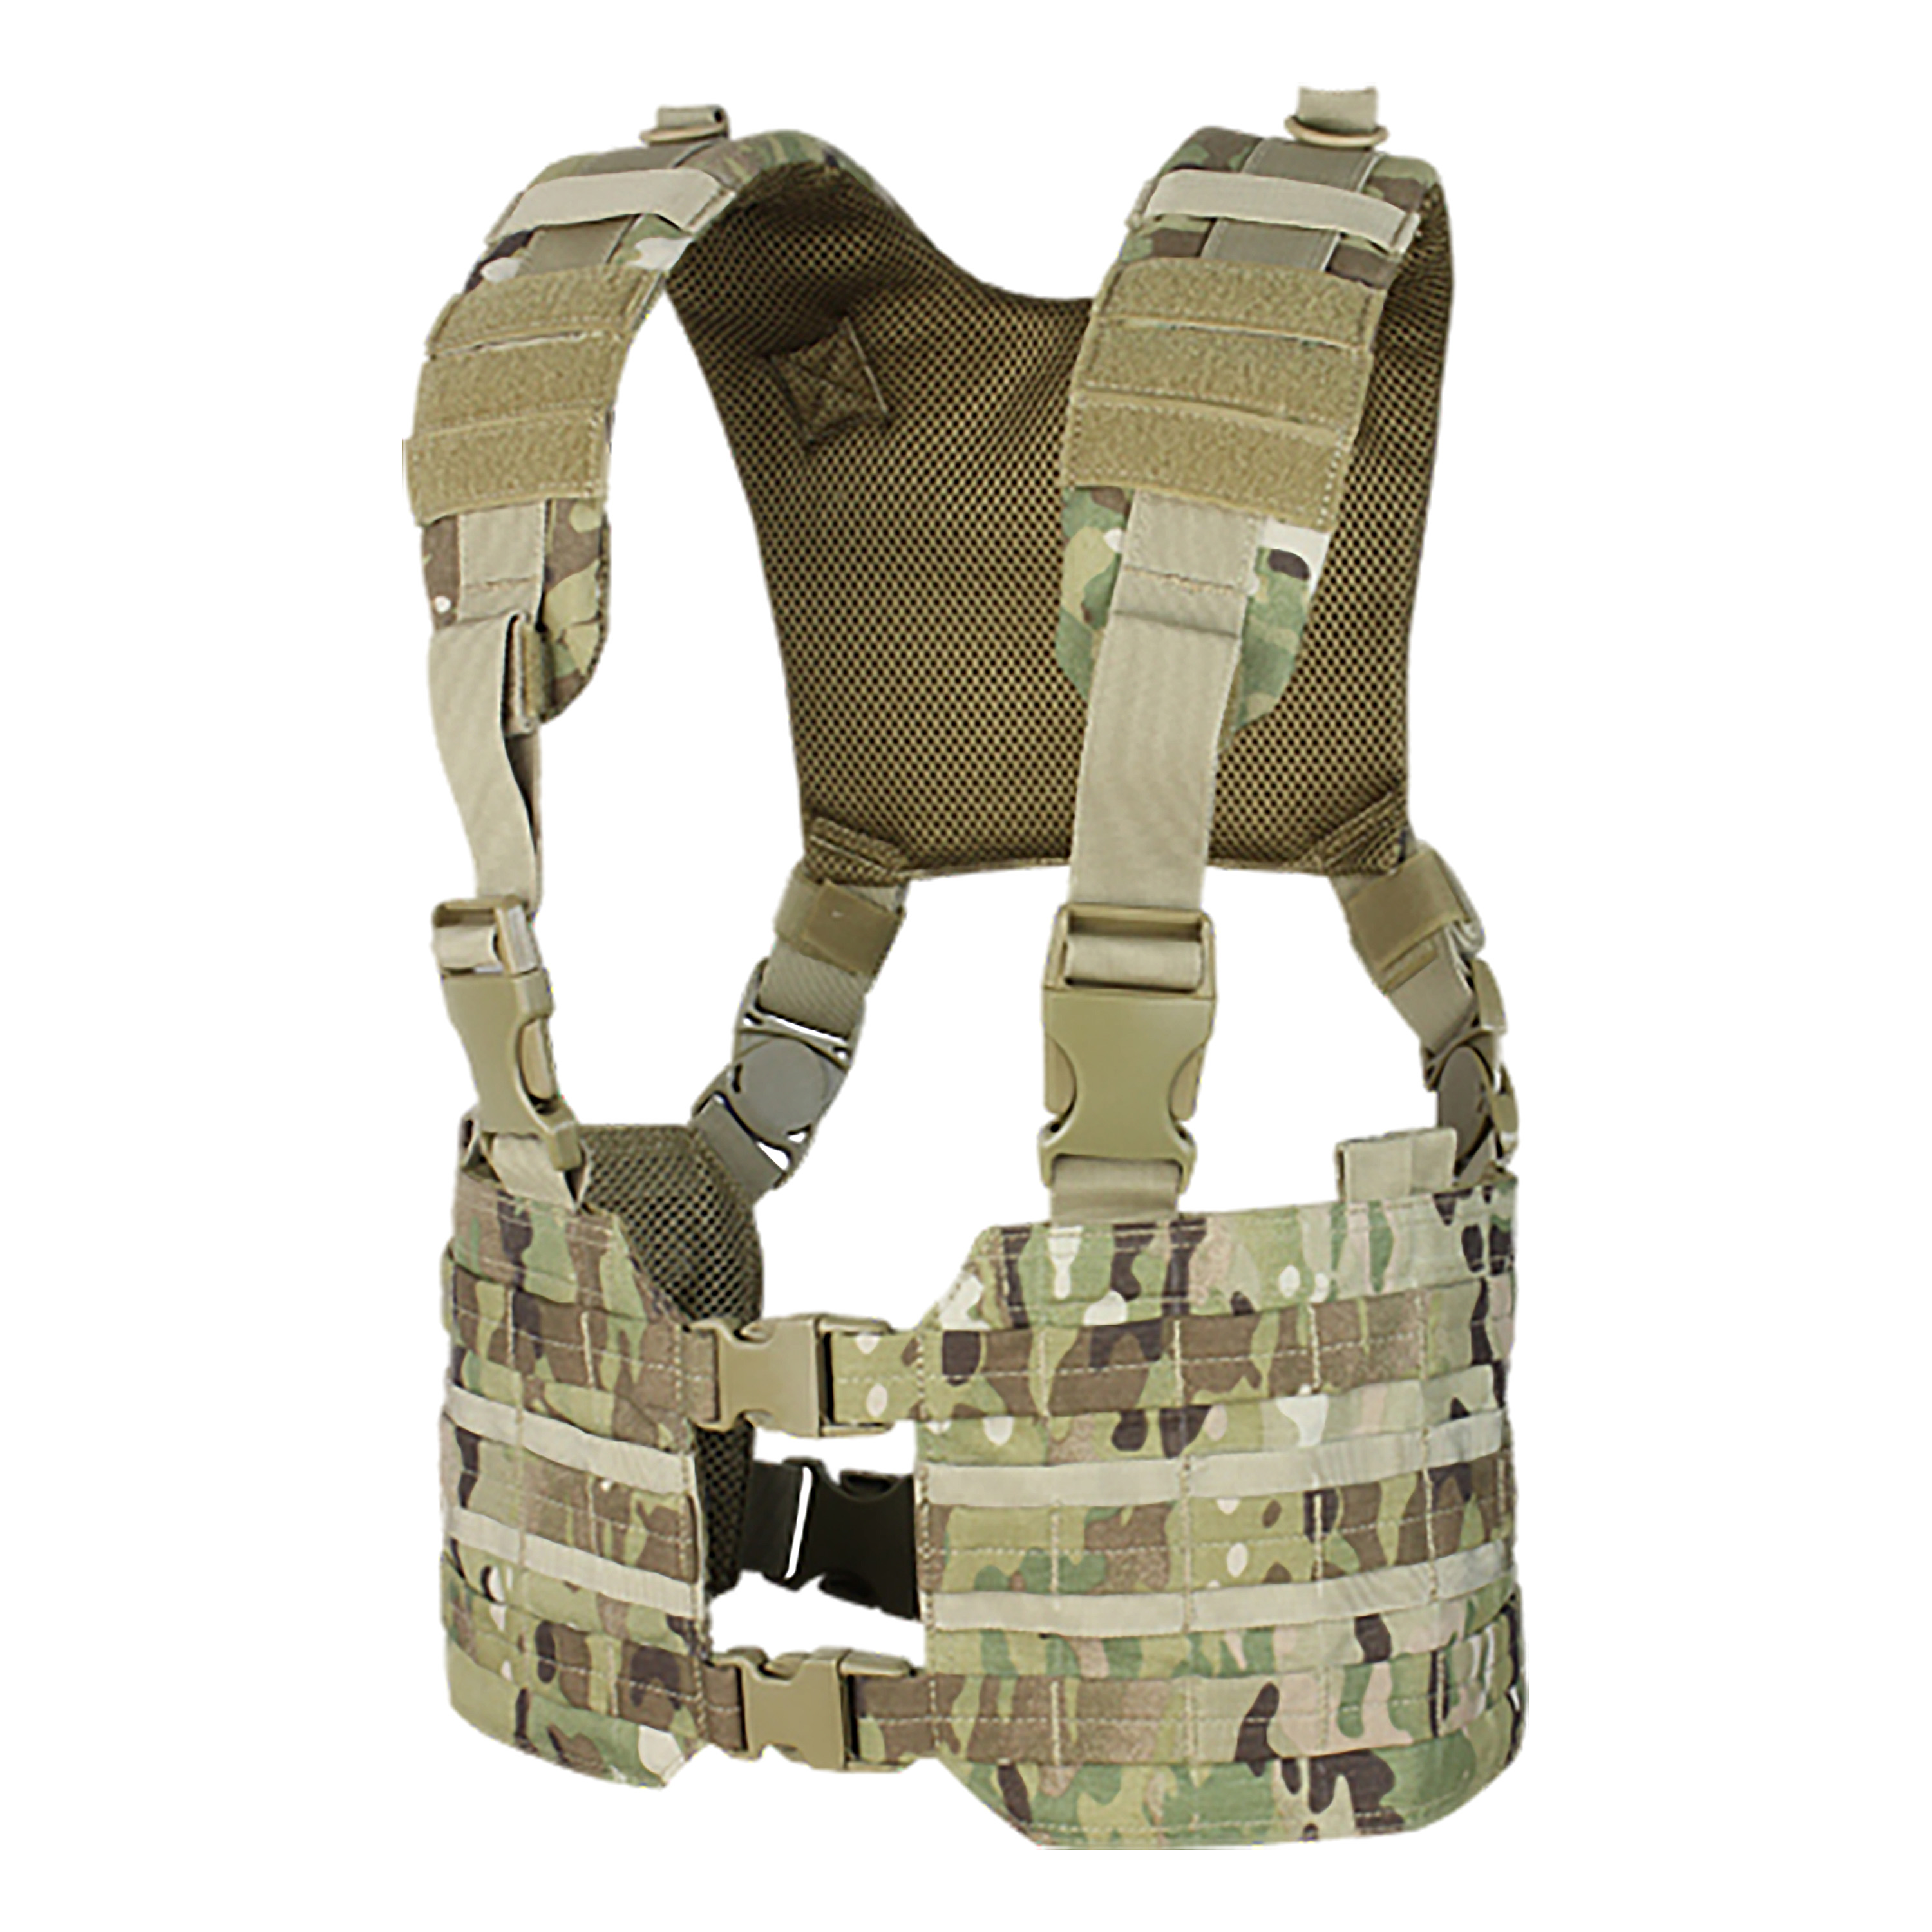 Condor MCR7 Ronin Chest Rig multicam